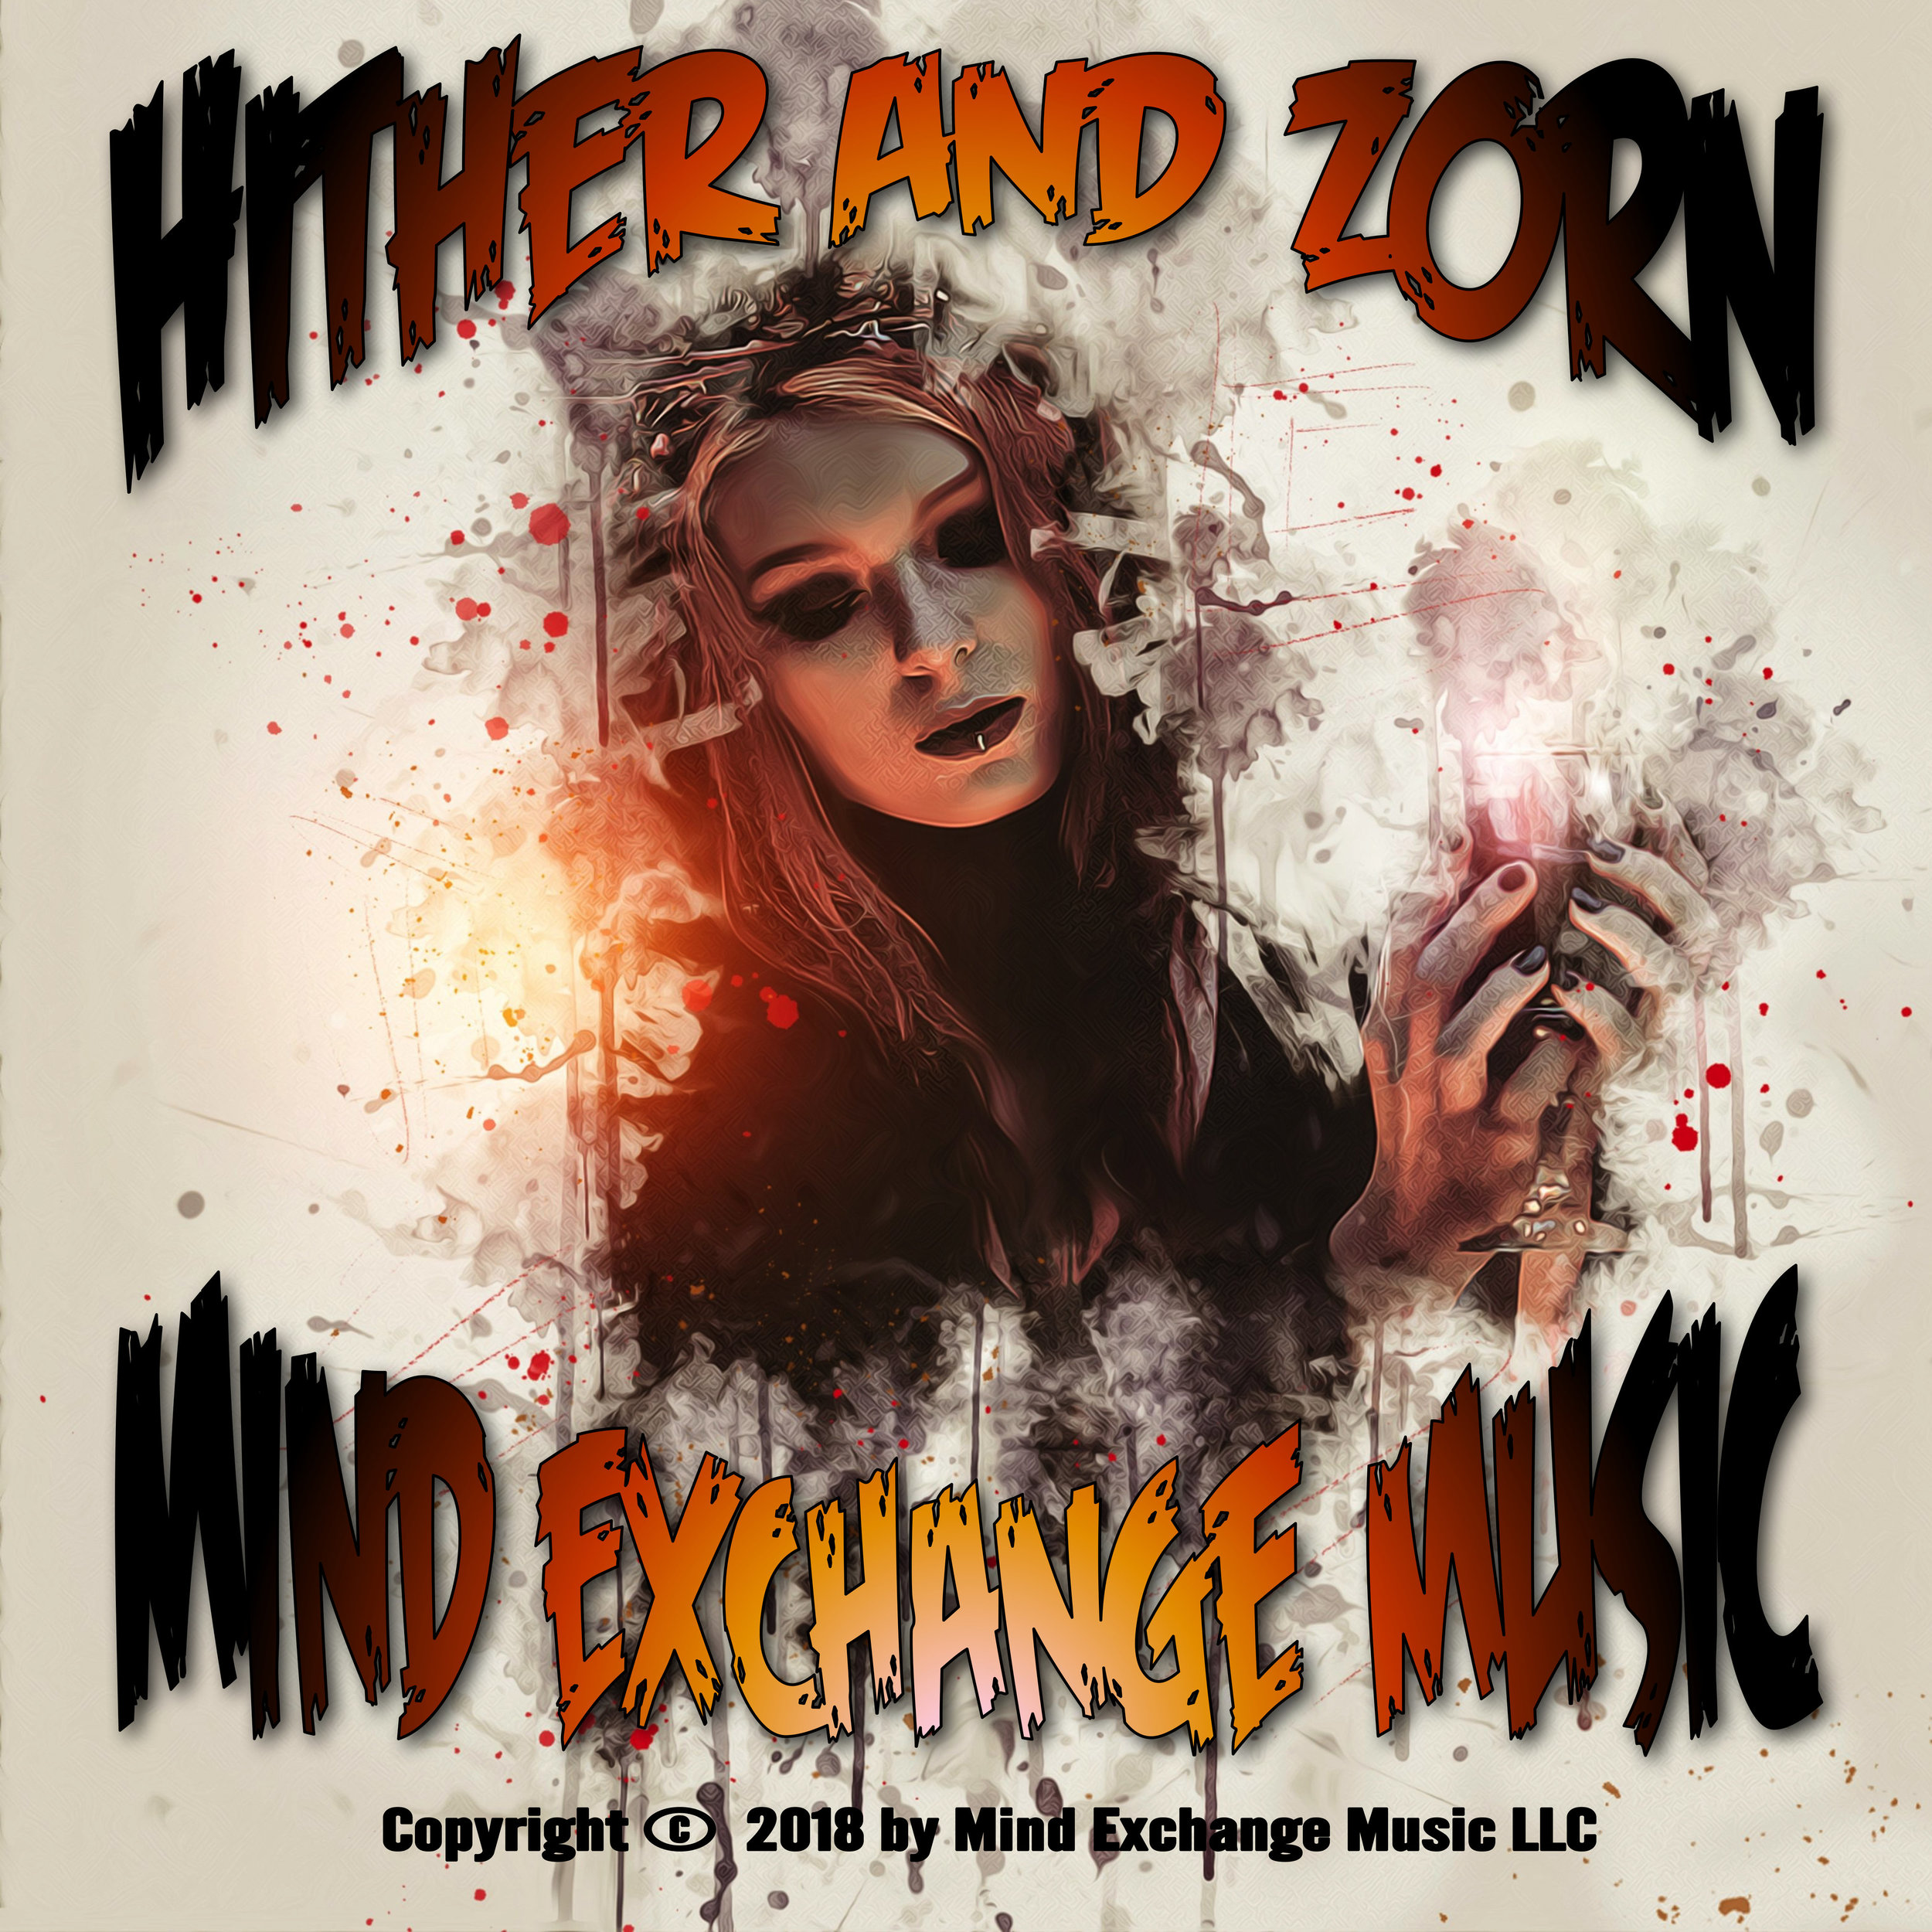 Mind Exchange Music's Hither And Zorn Record Cover